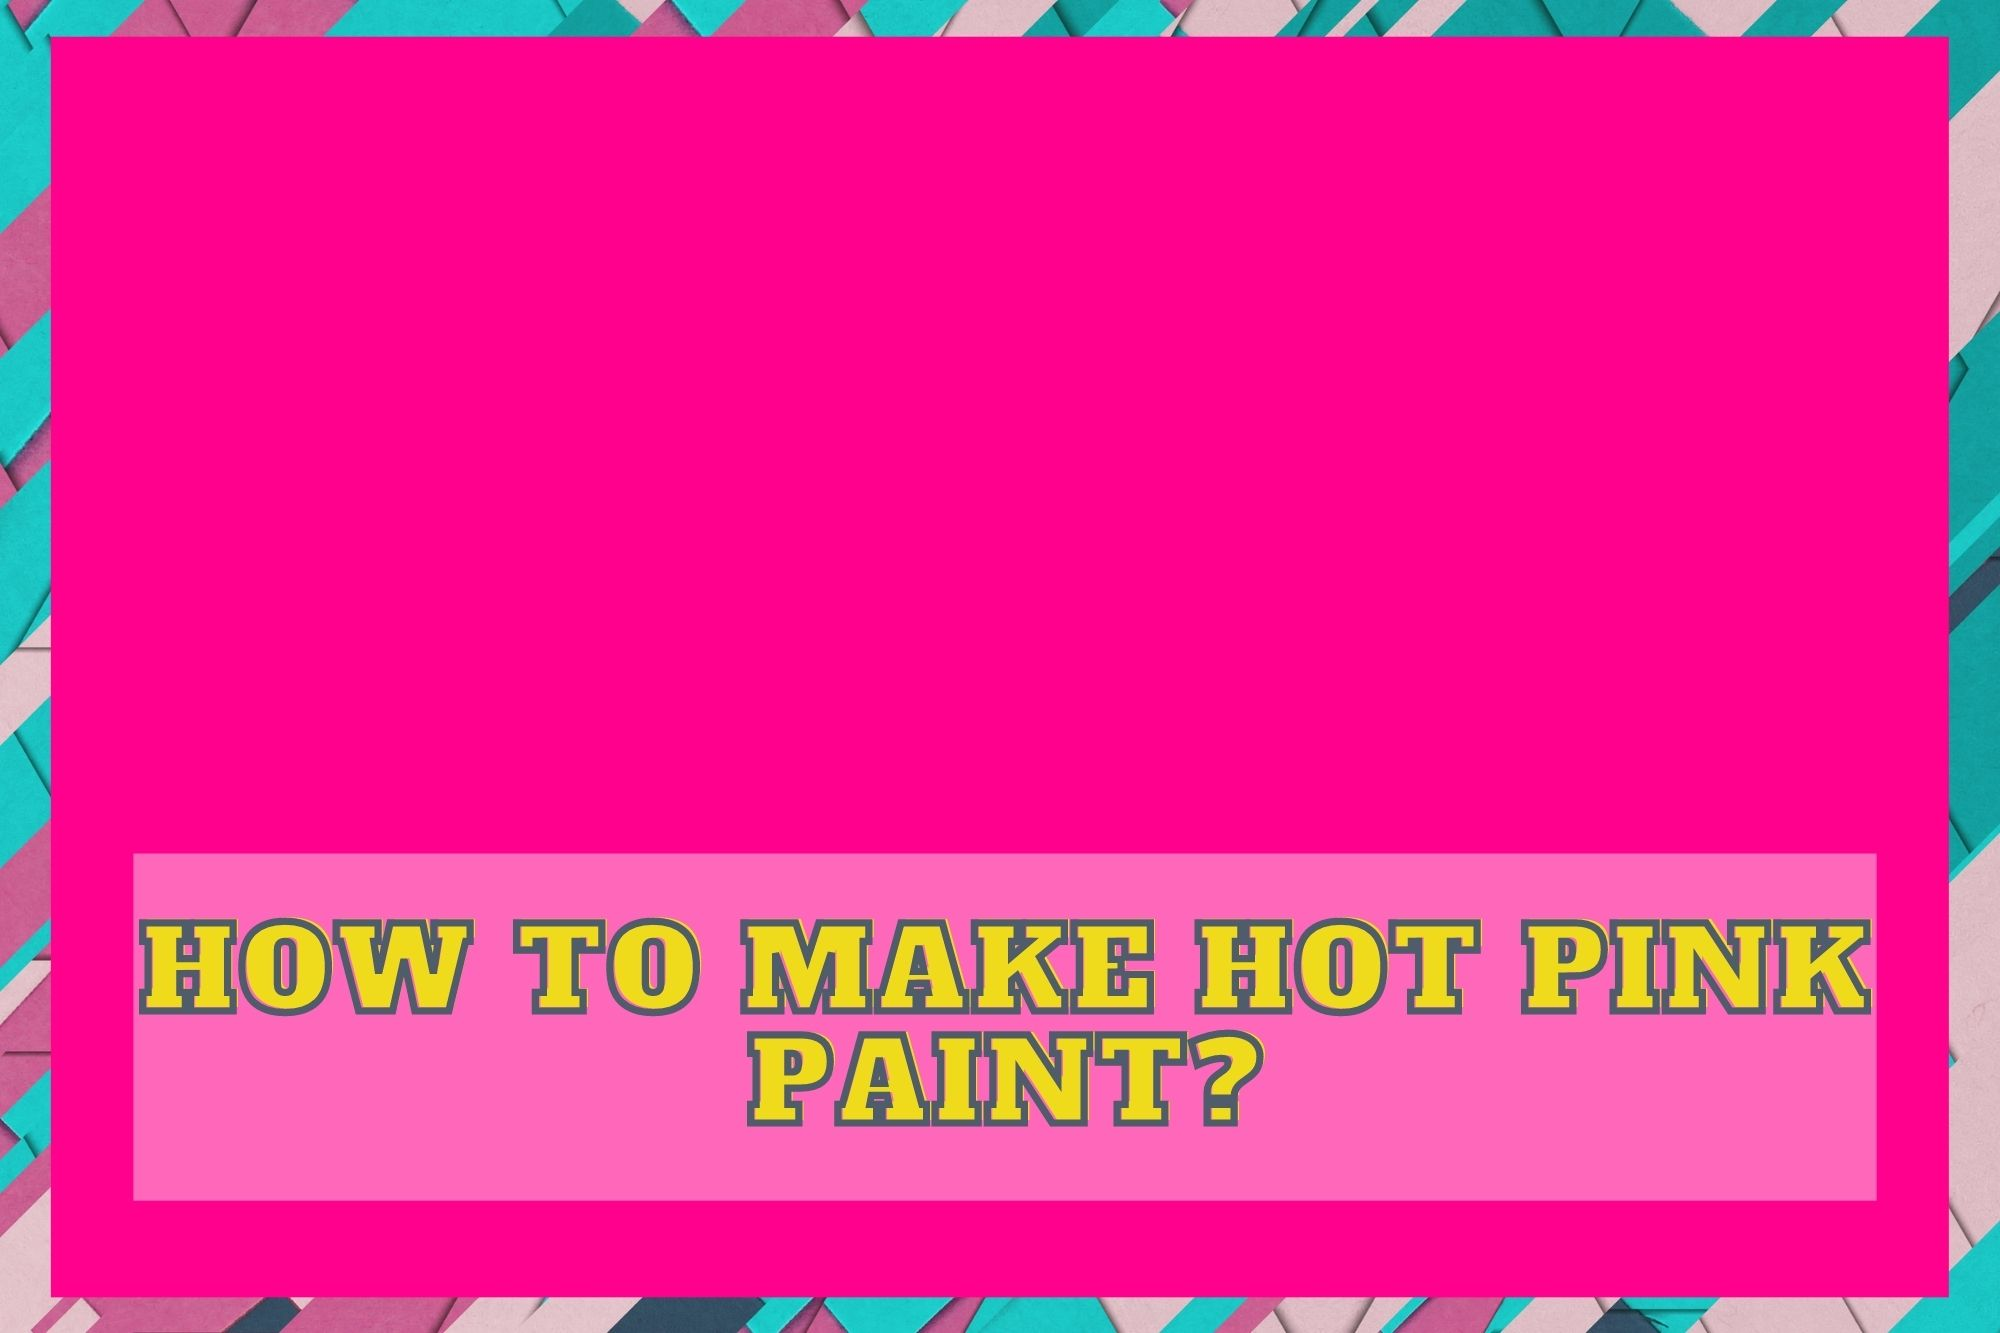 How to Make Hot Pink Paint?